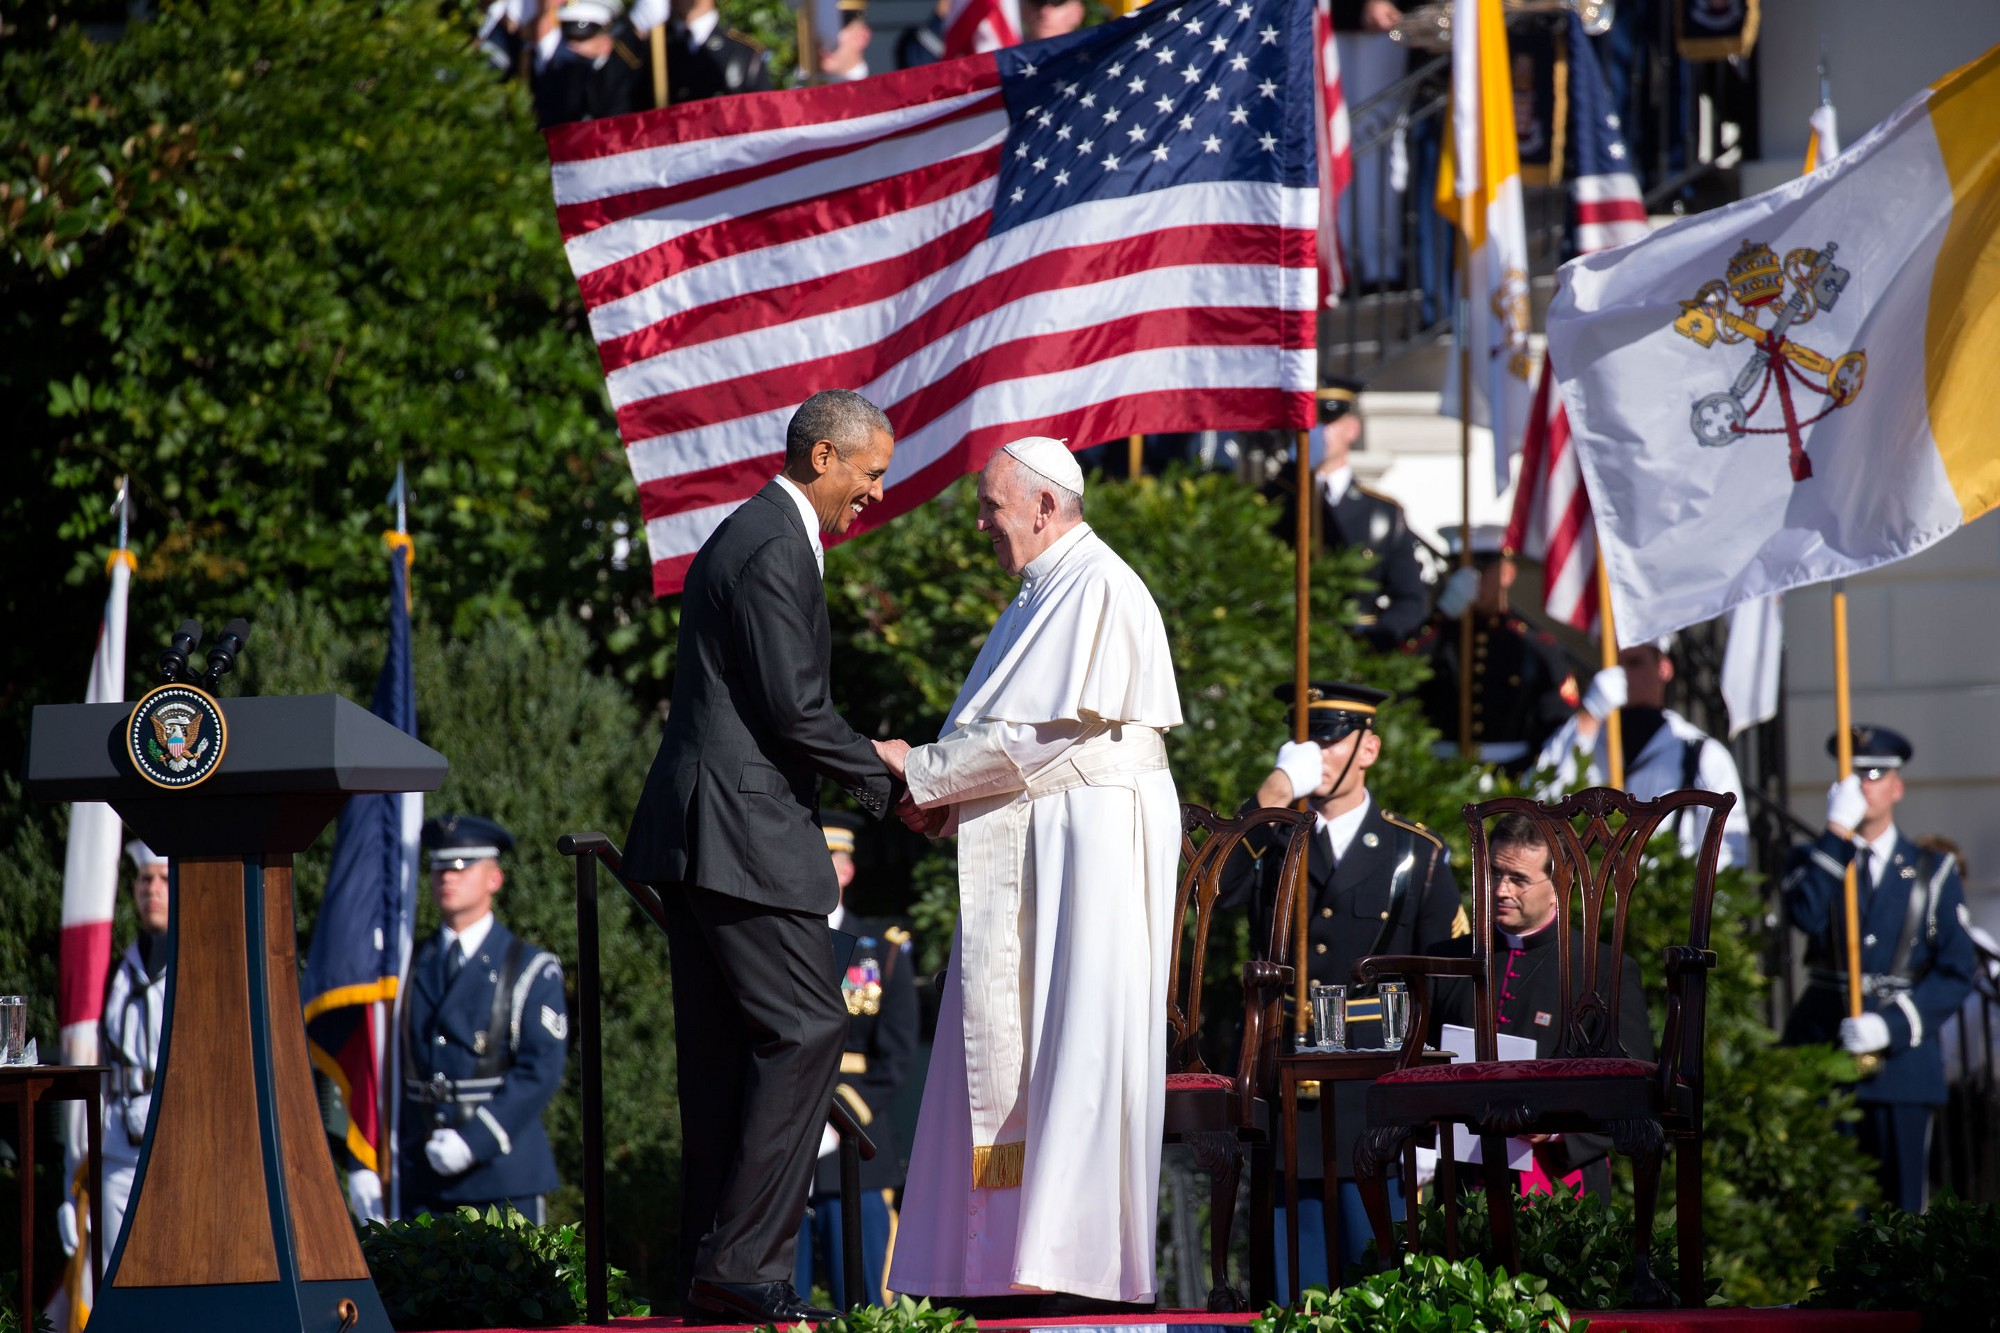 The President welcomes Pope Francis to the podium to speak. (Official White House Photo by Amanda Lucidon)